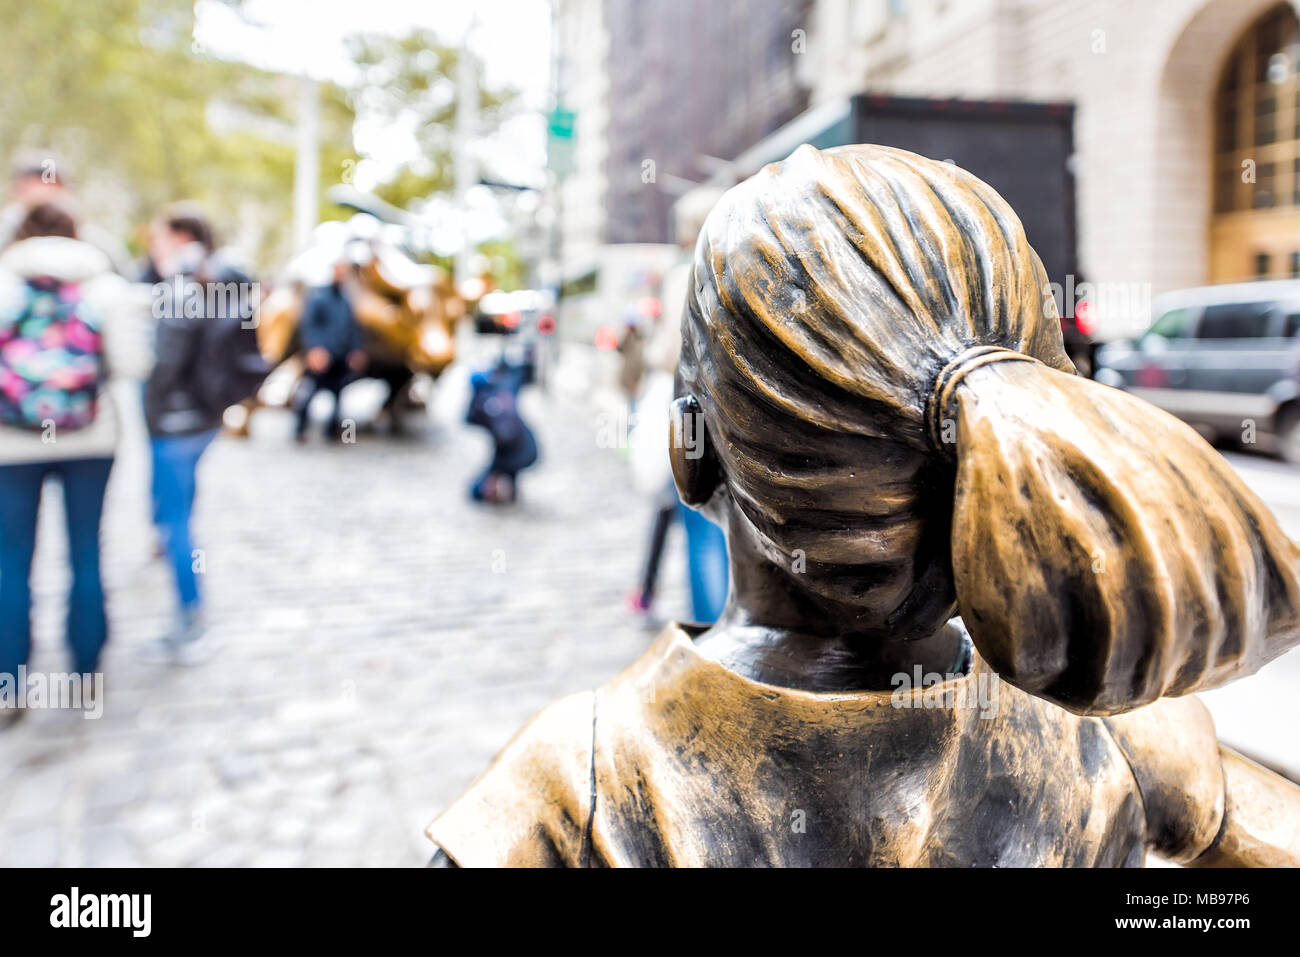 New York City, USA - October 30, 2017: Wall Street stock exchange The Fearless Girl statue facing Charging Bull metal in NYC Manhattan lower financial - Stock Image